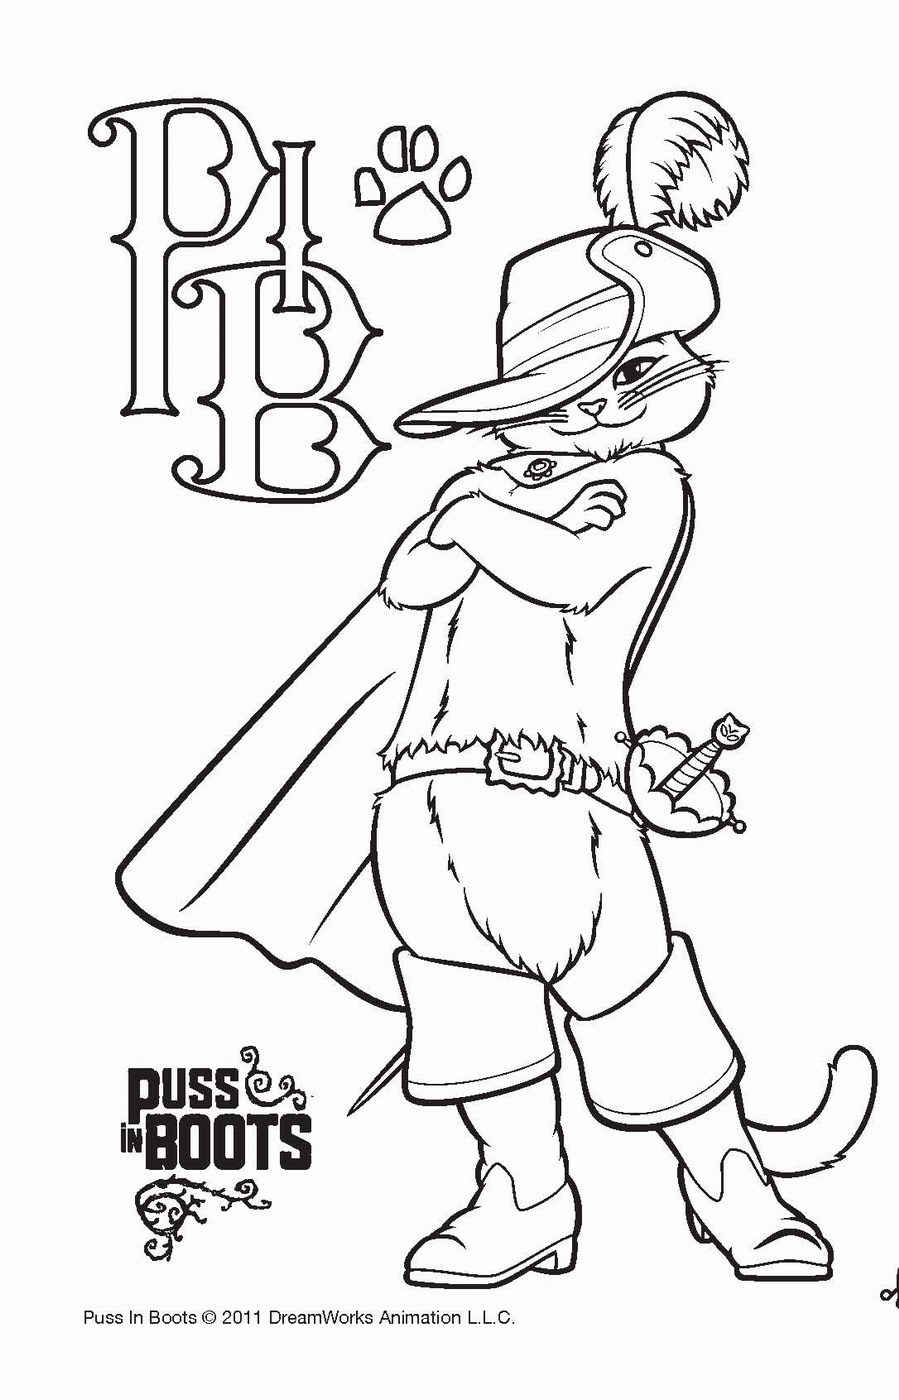 Puss In Boots Drawing at GetDrawings.com | Free for personal use ...